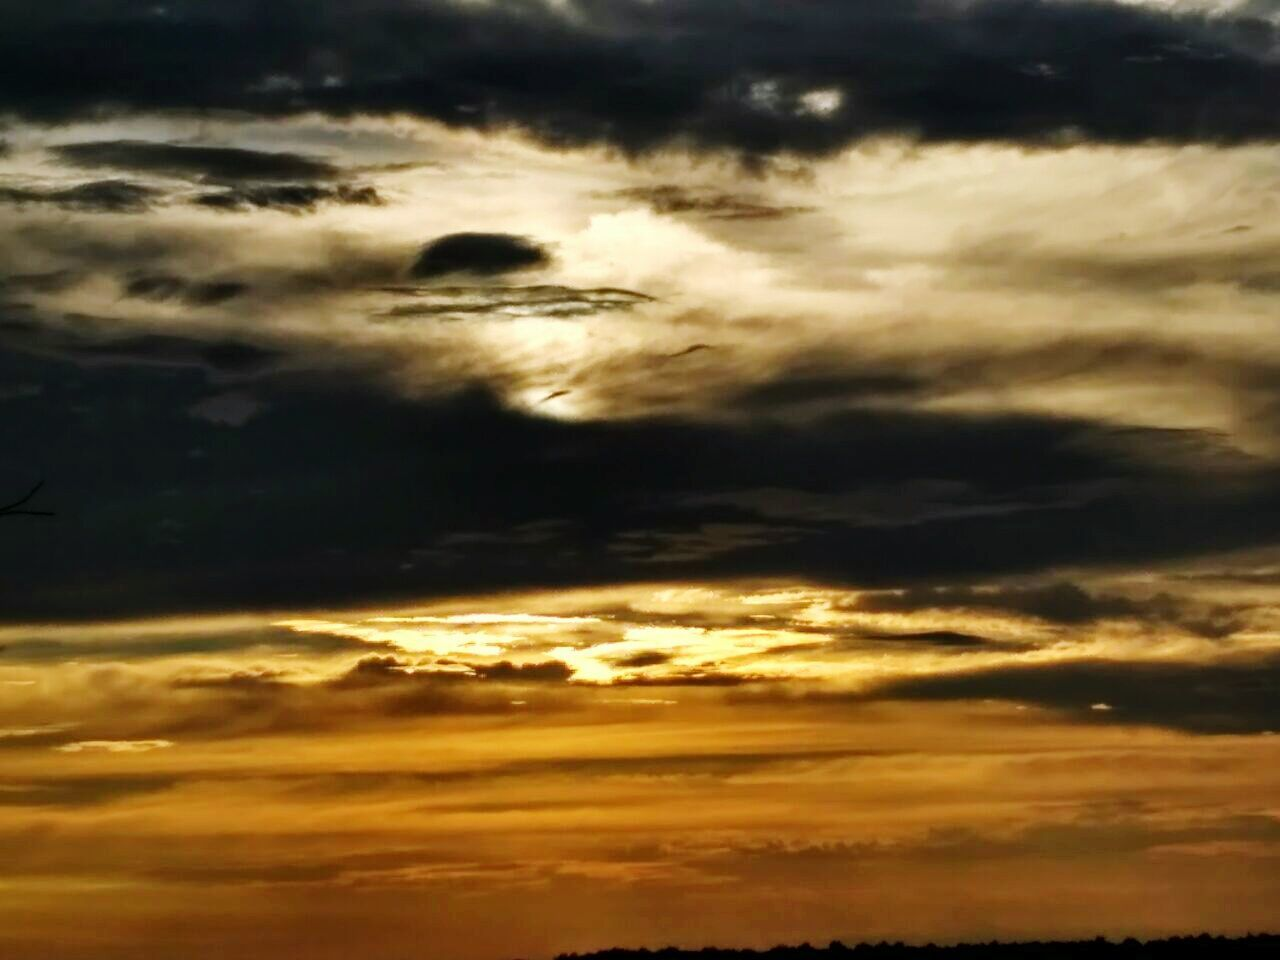 cloud - sky, sunset, dramatic sky, sky, cloudscape, atmospheric mood, scenics, beauty in nature, nature, tranquility, majestic, tranquil scene, weather, sky only, silhouette, storm cloud, no people, idyllic, backgrounds, awe, outdoors, low angle view, sunlight, yellow, day